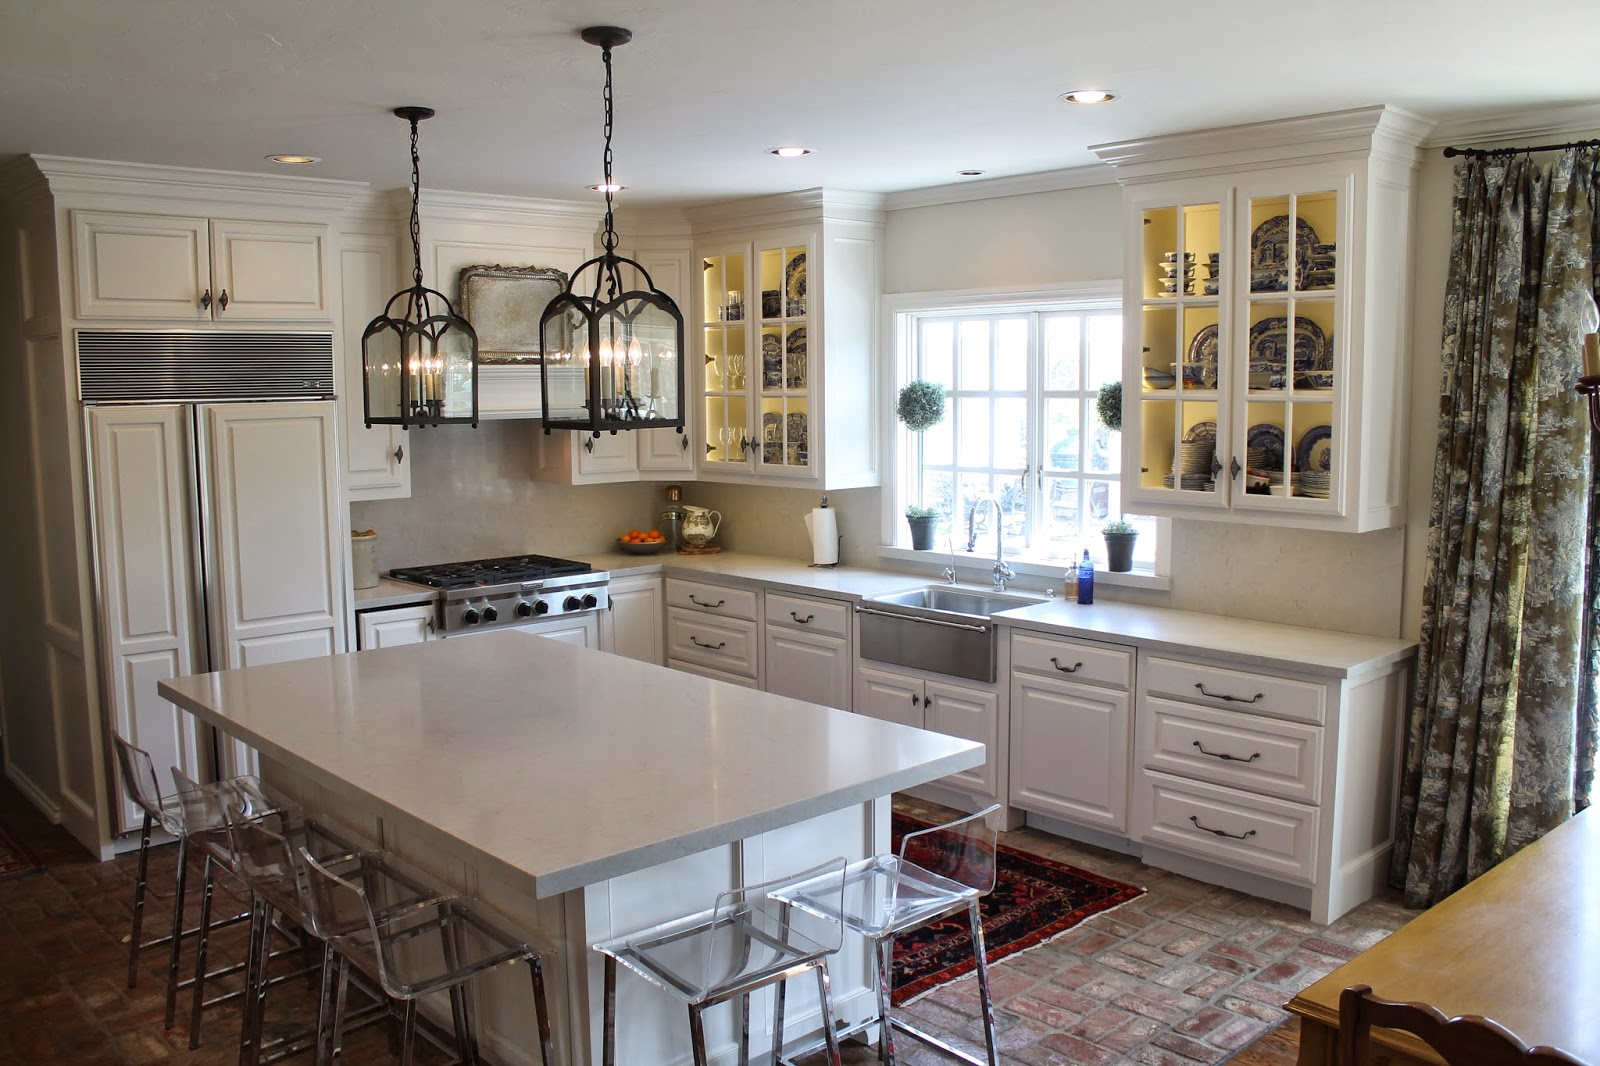 The Story of an Eleven Gables Kitchen Remodel  It is finished. Eleven Gables  The Story of an Eleven Gables Kitchen Remodel  It